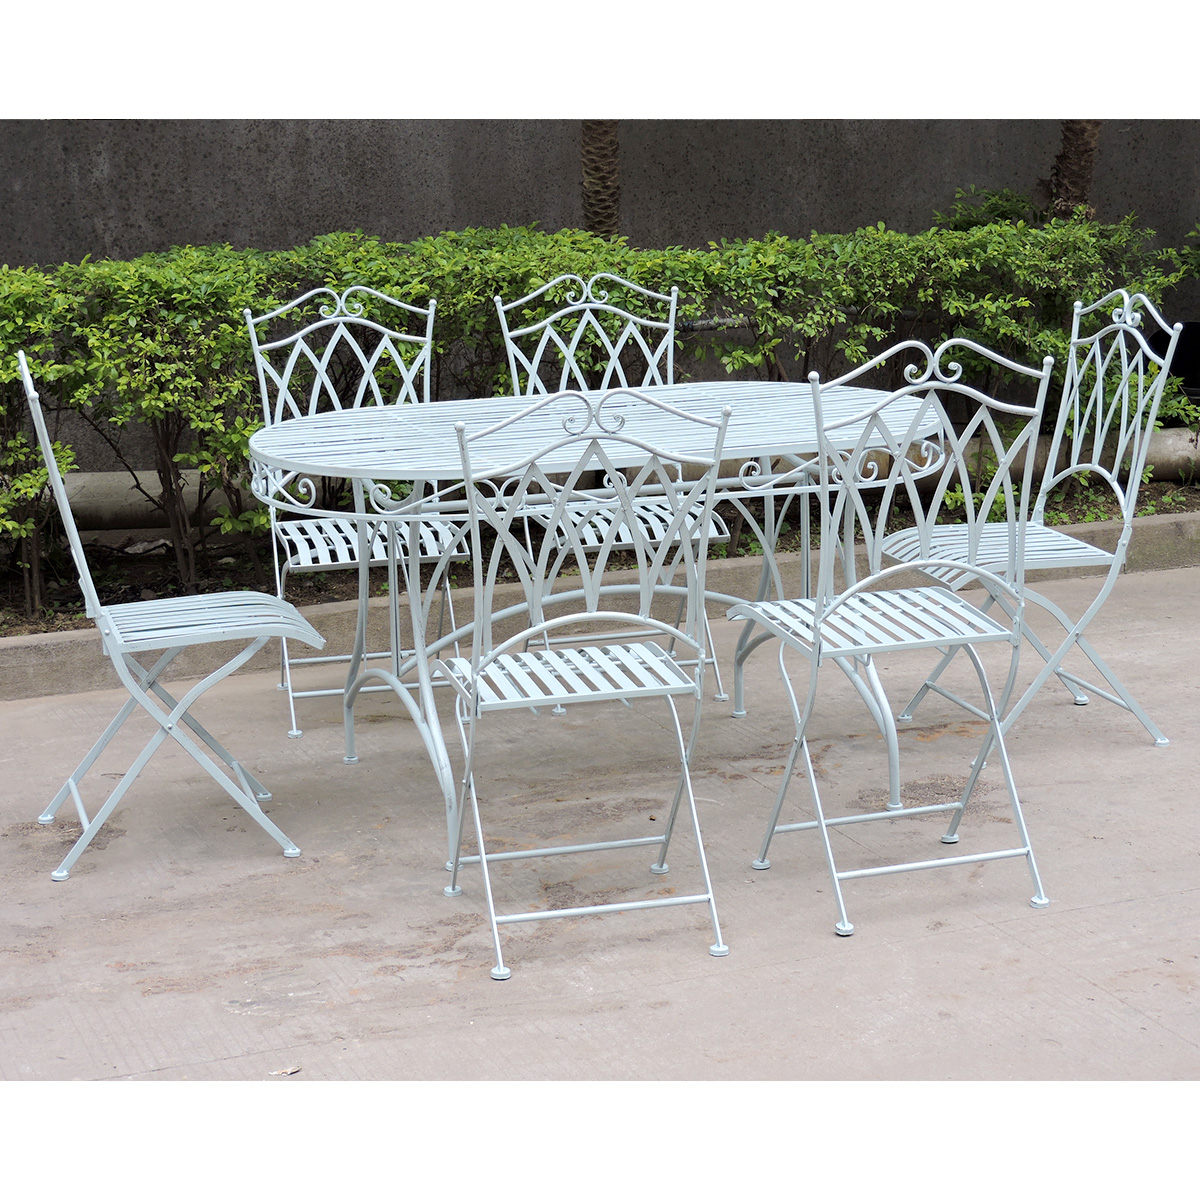 Charles Bentley Garden 7 Piece Wrought Iron Furniture Set ...